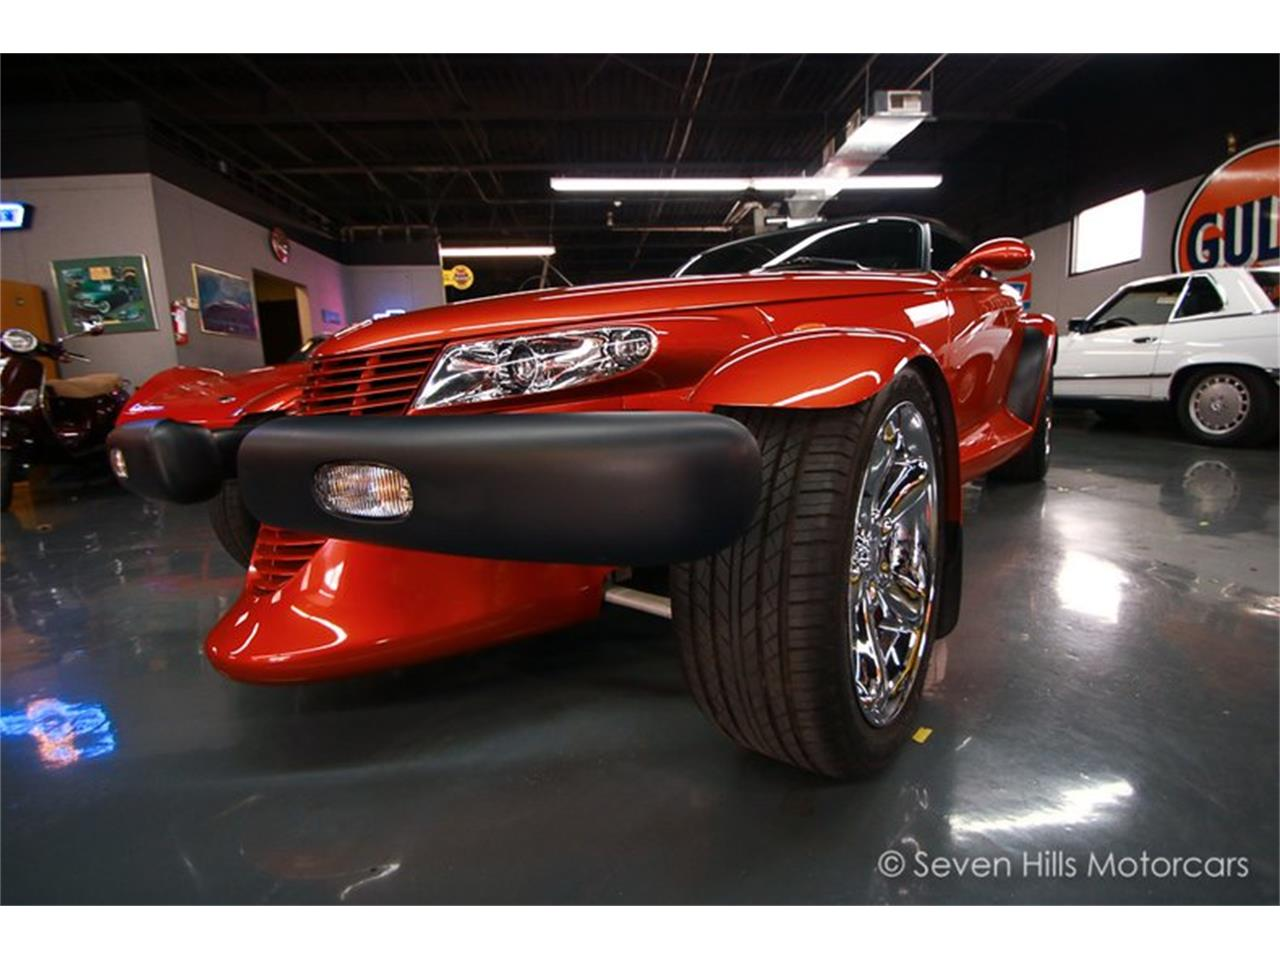 Large Picture of '01 Prowler located in Ohio - $37,900.00 Offered by Seven Hills Motorcars - PW1N